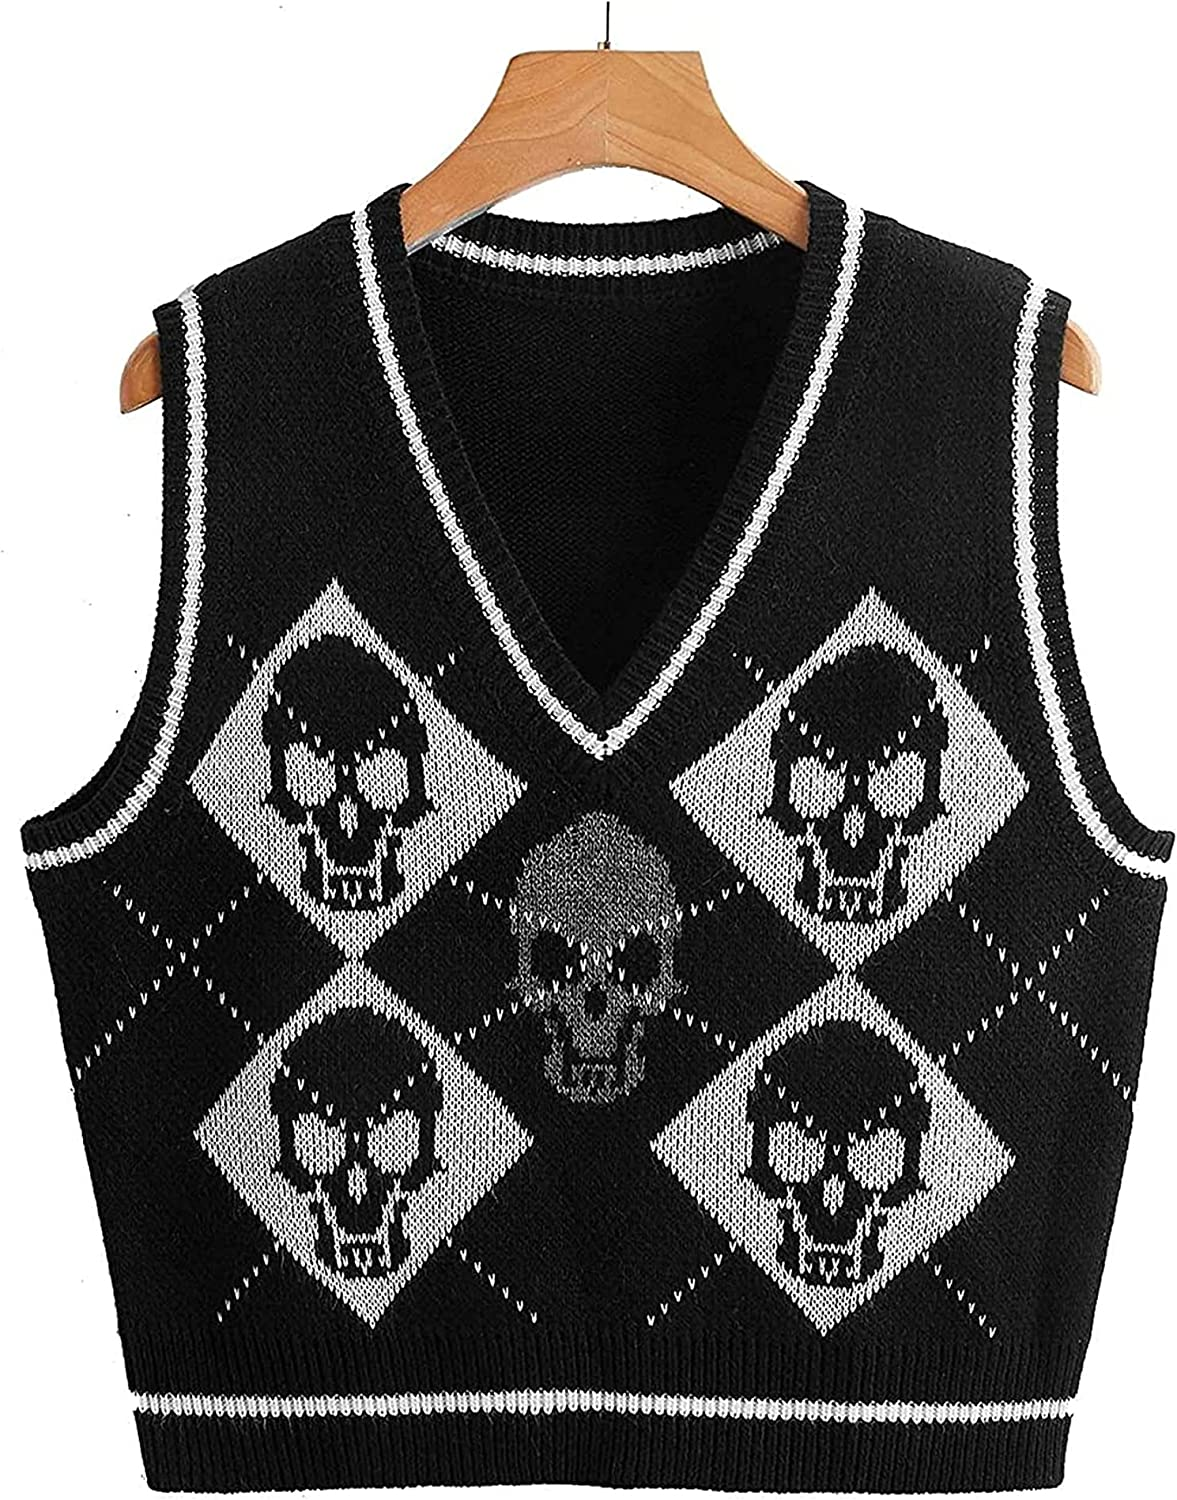 Women Y2K Argyle Skull Knit Sweater Vest Loose V Neck Sleeveless Gothic Cropped Tank Top Streetwear Pullover